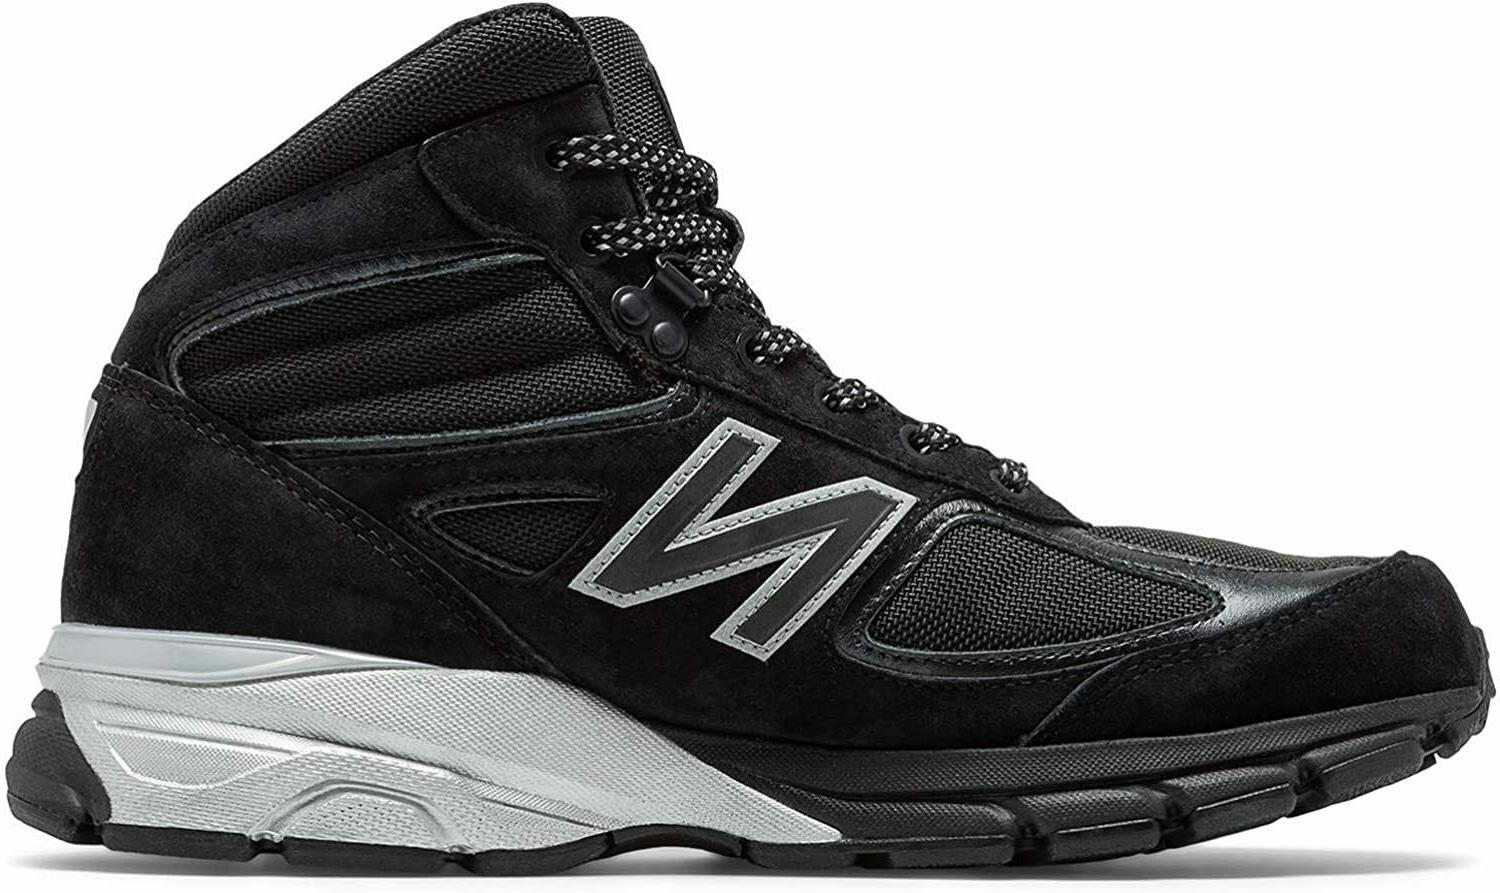 New MO990BP4 M990v4 990 Marvel Black Panther Boots 9